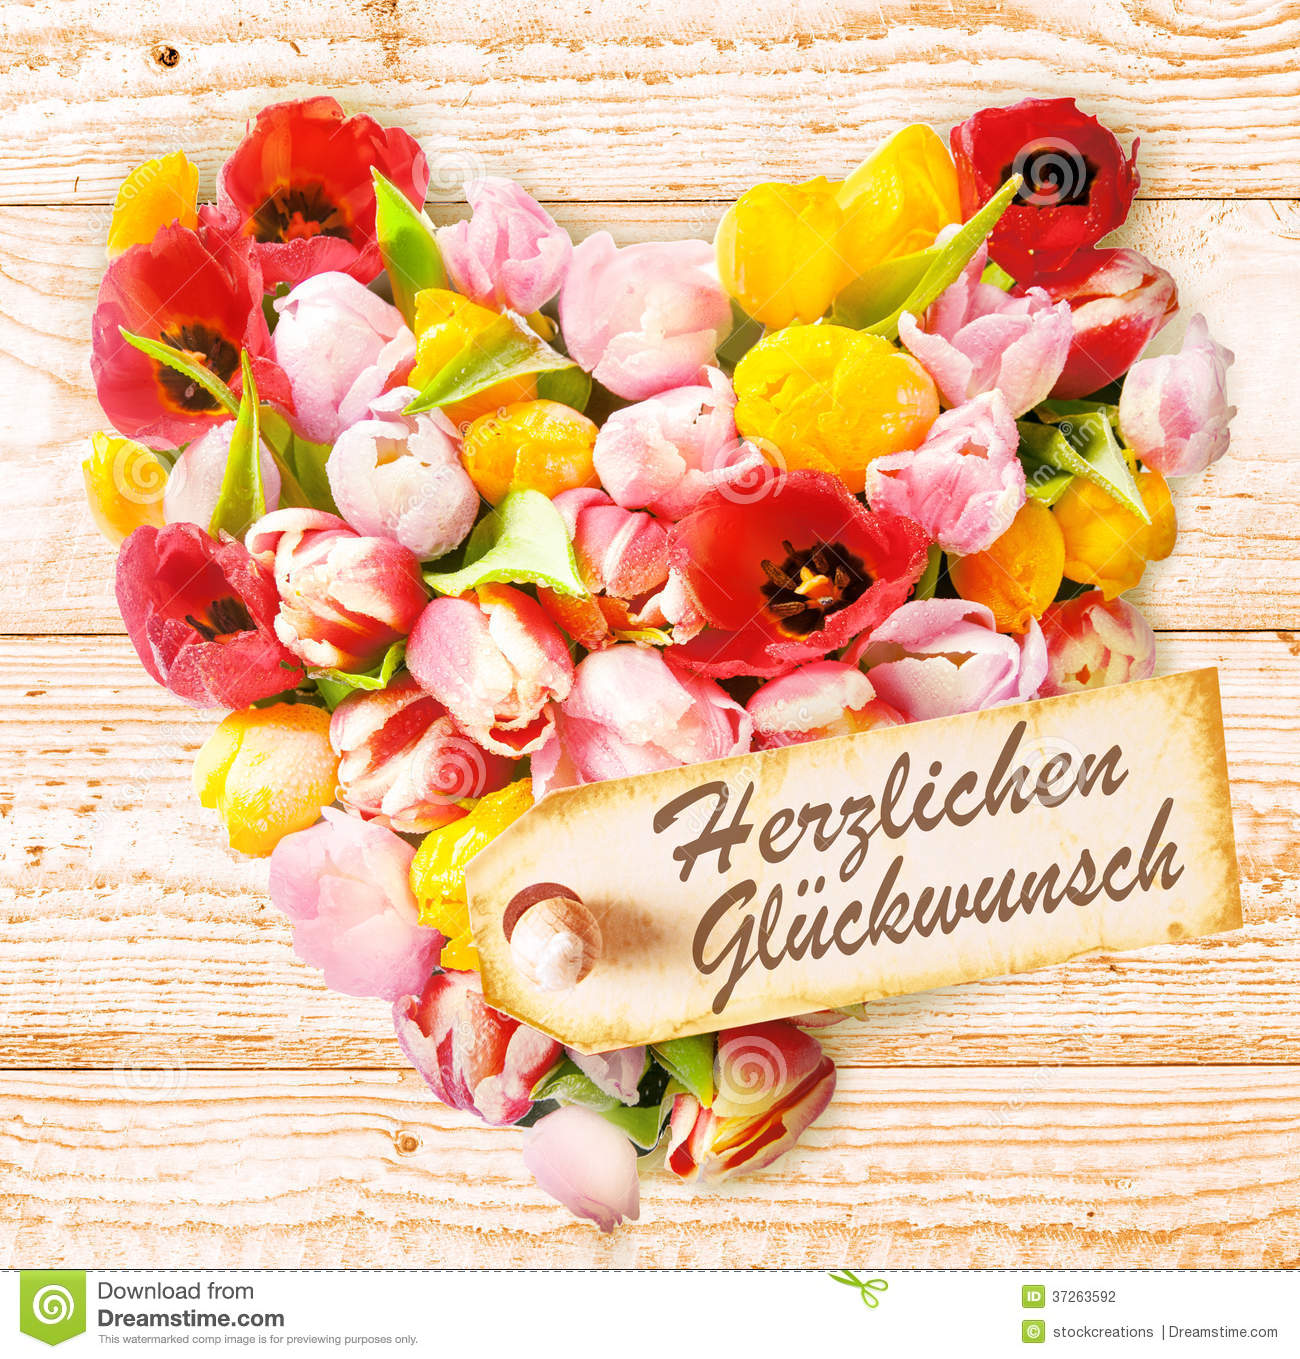 German Birthday Wishes On A Colourful Floral Heart Stock How To Wish Happy Birthday In German